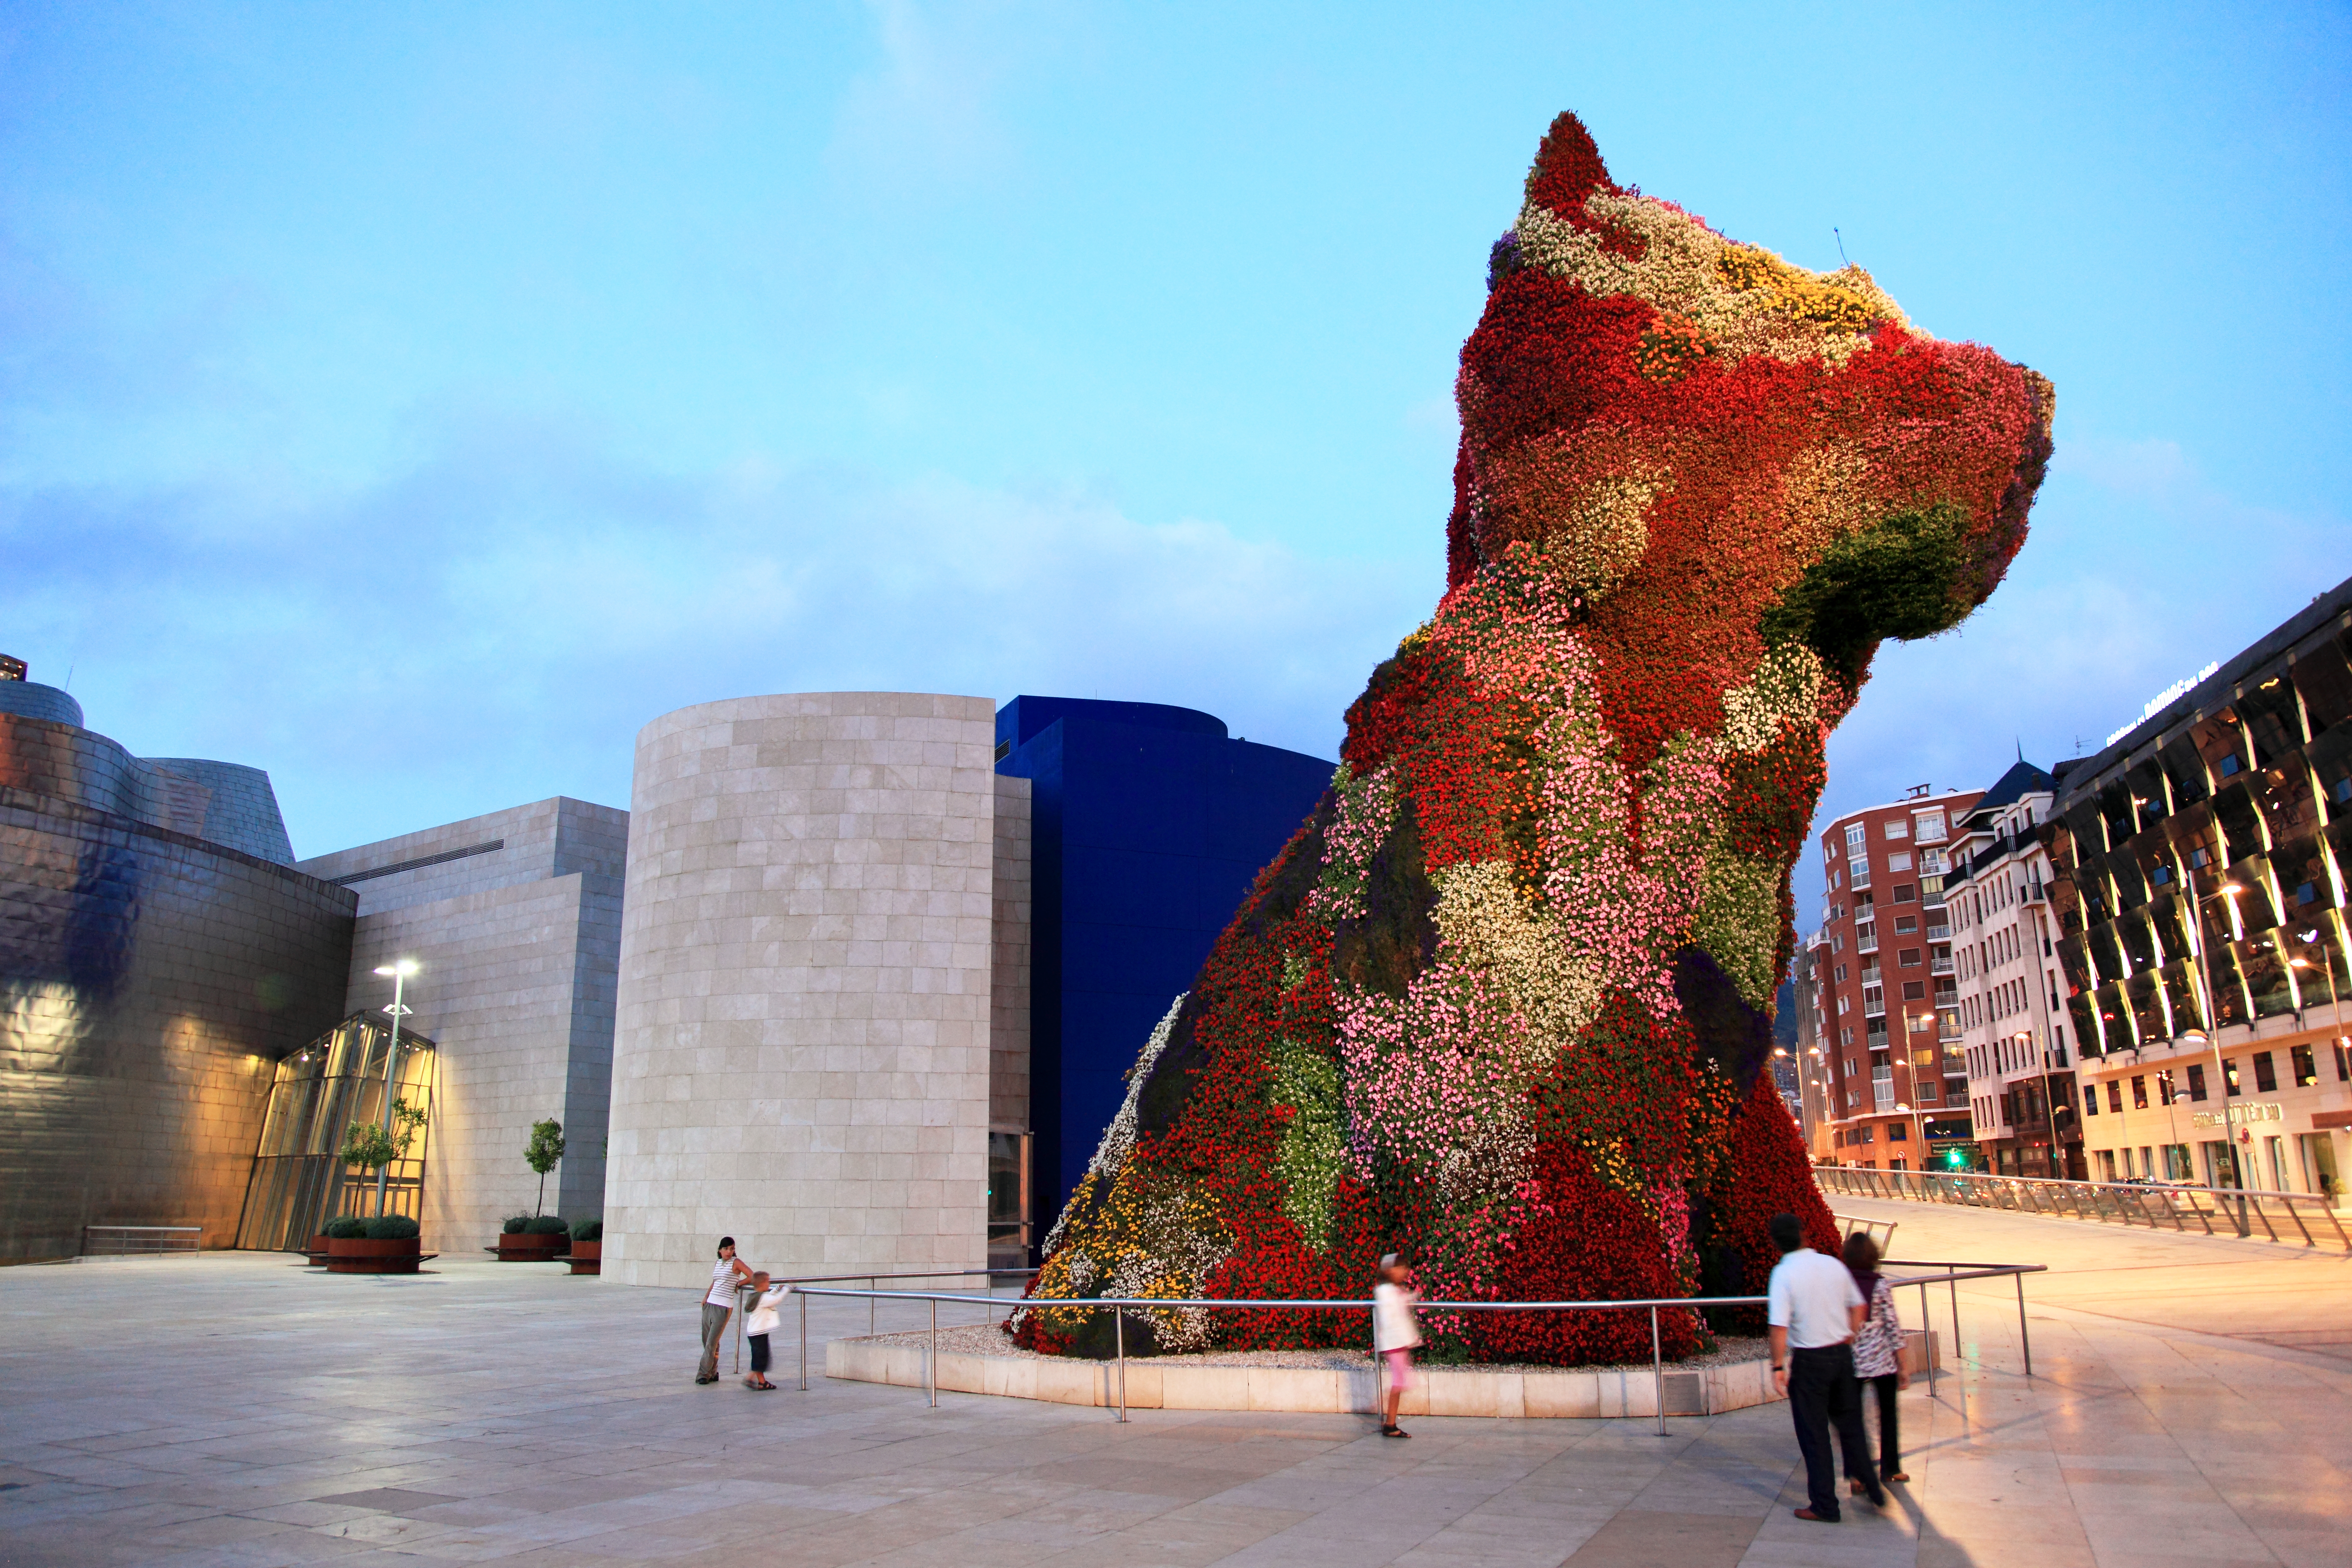 Bilbao Spain  city photos gallery : ... :Flowerbed, Guggenheim Museum , Spain, Bilbao Wikimedia Commons